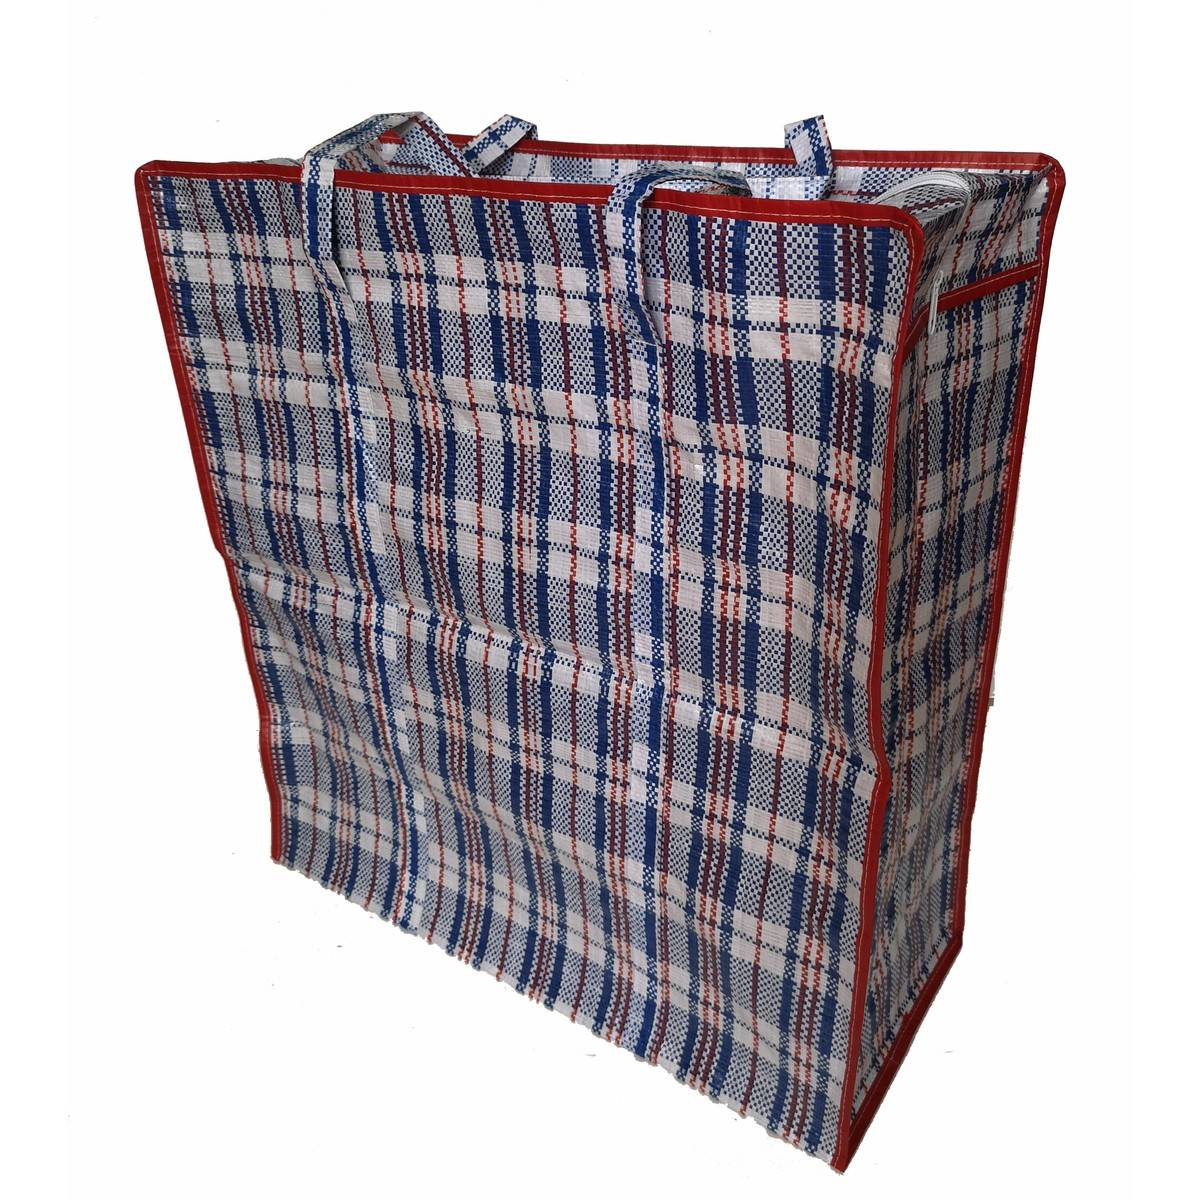 Bike Basket Big W Jumbo Zip Storage Bag Checkered Print